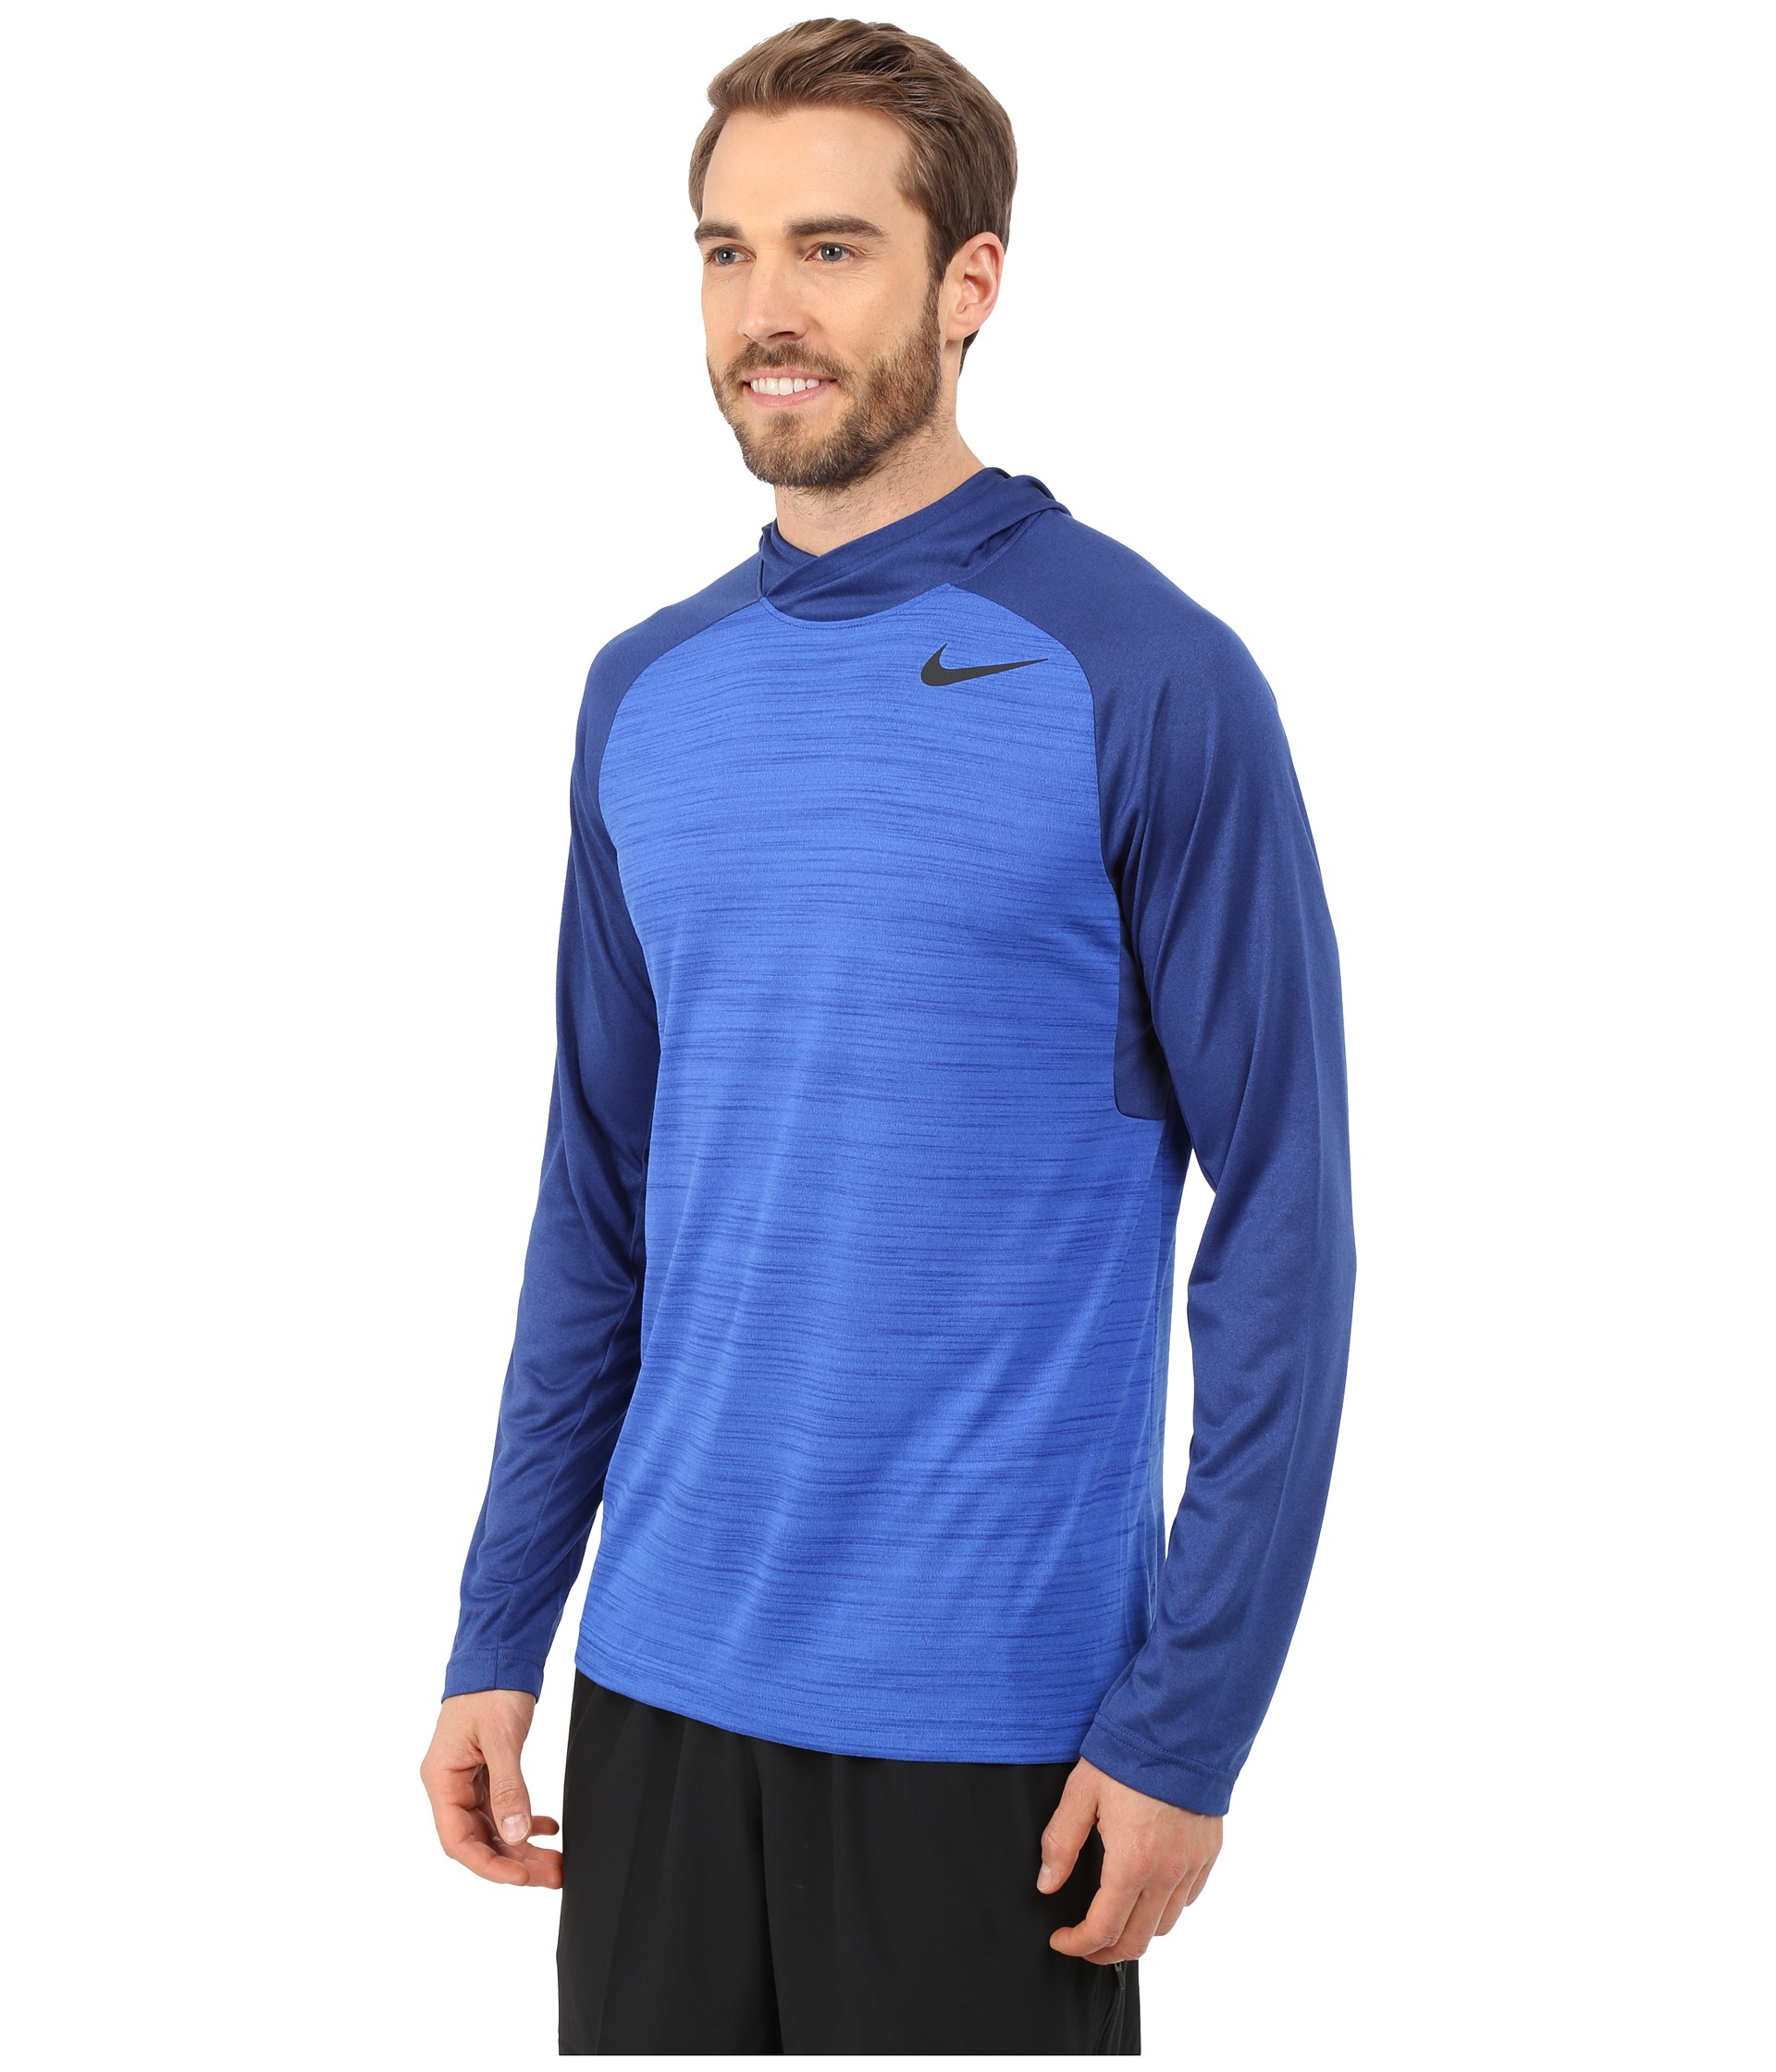 959188e8f242 Lyst - Nike Dri-fit™ Touch Long Sleeve Hoodie in Blue for Men